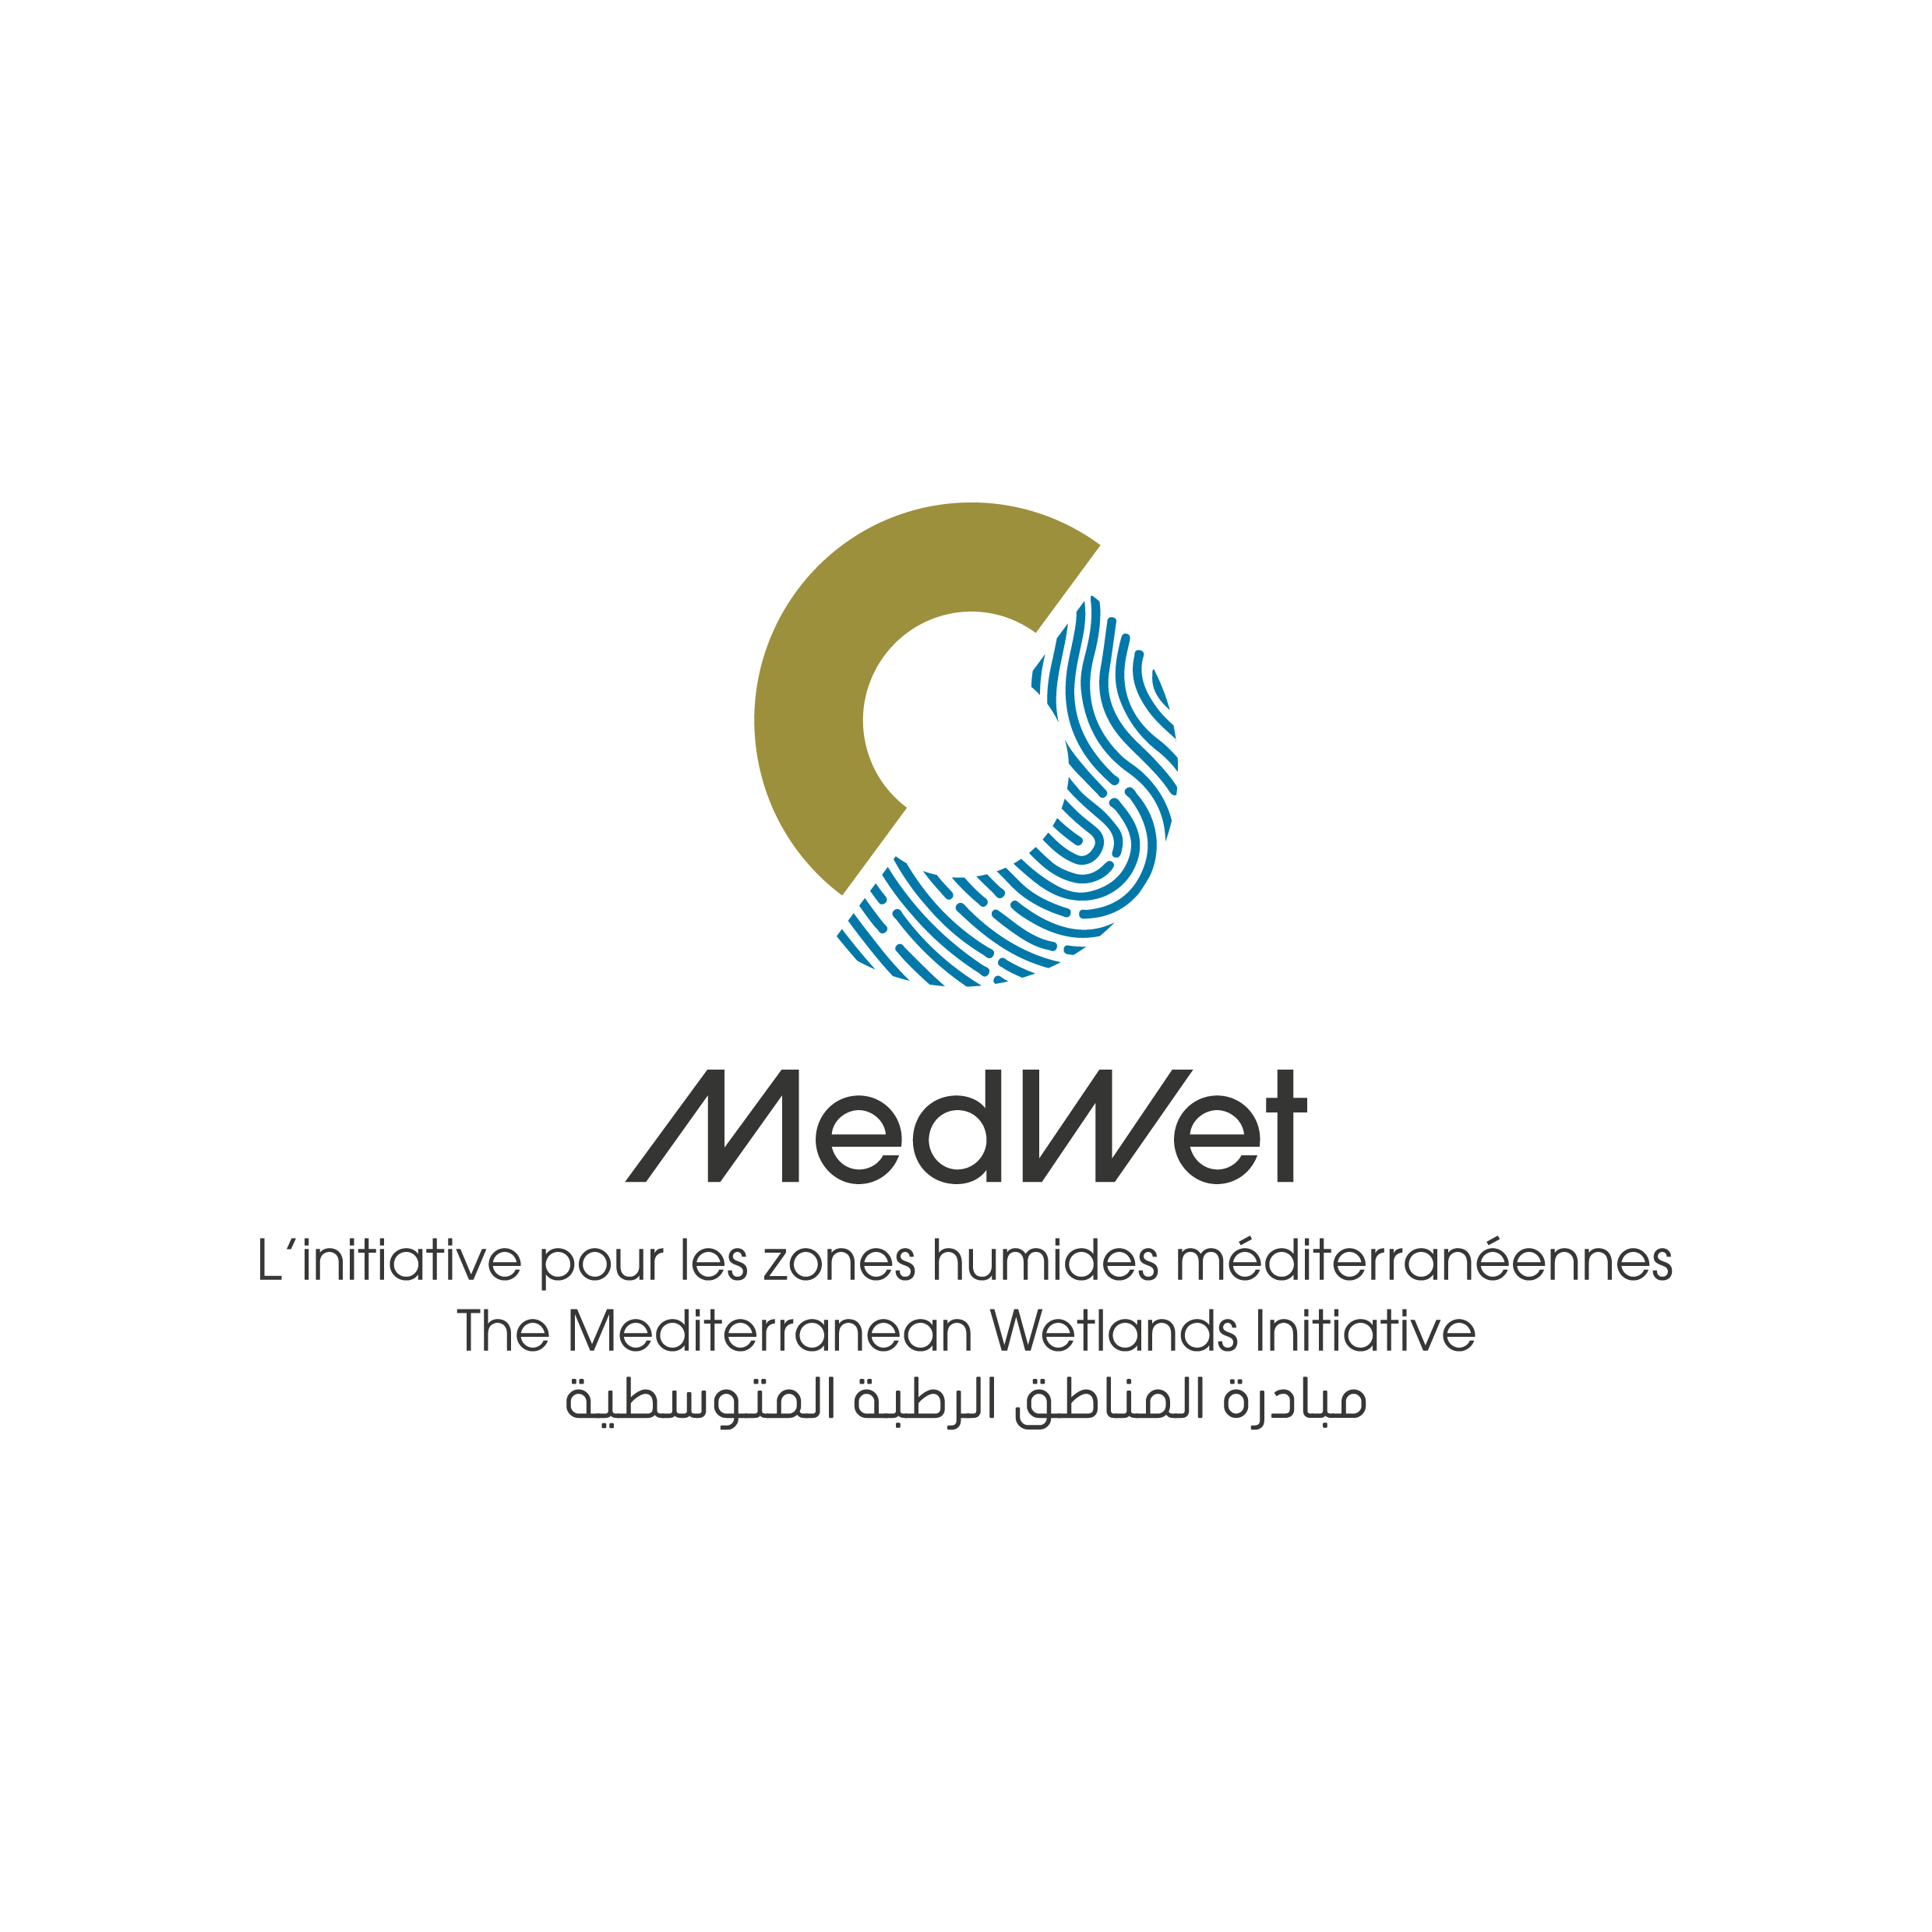 MedWet logotipo 3 language-color